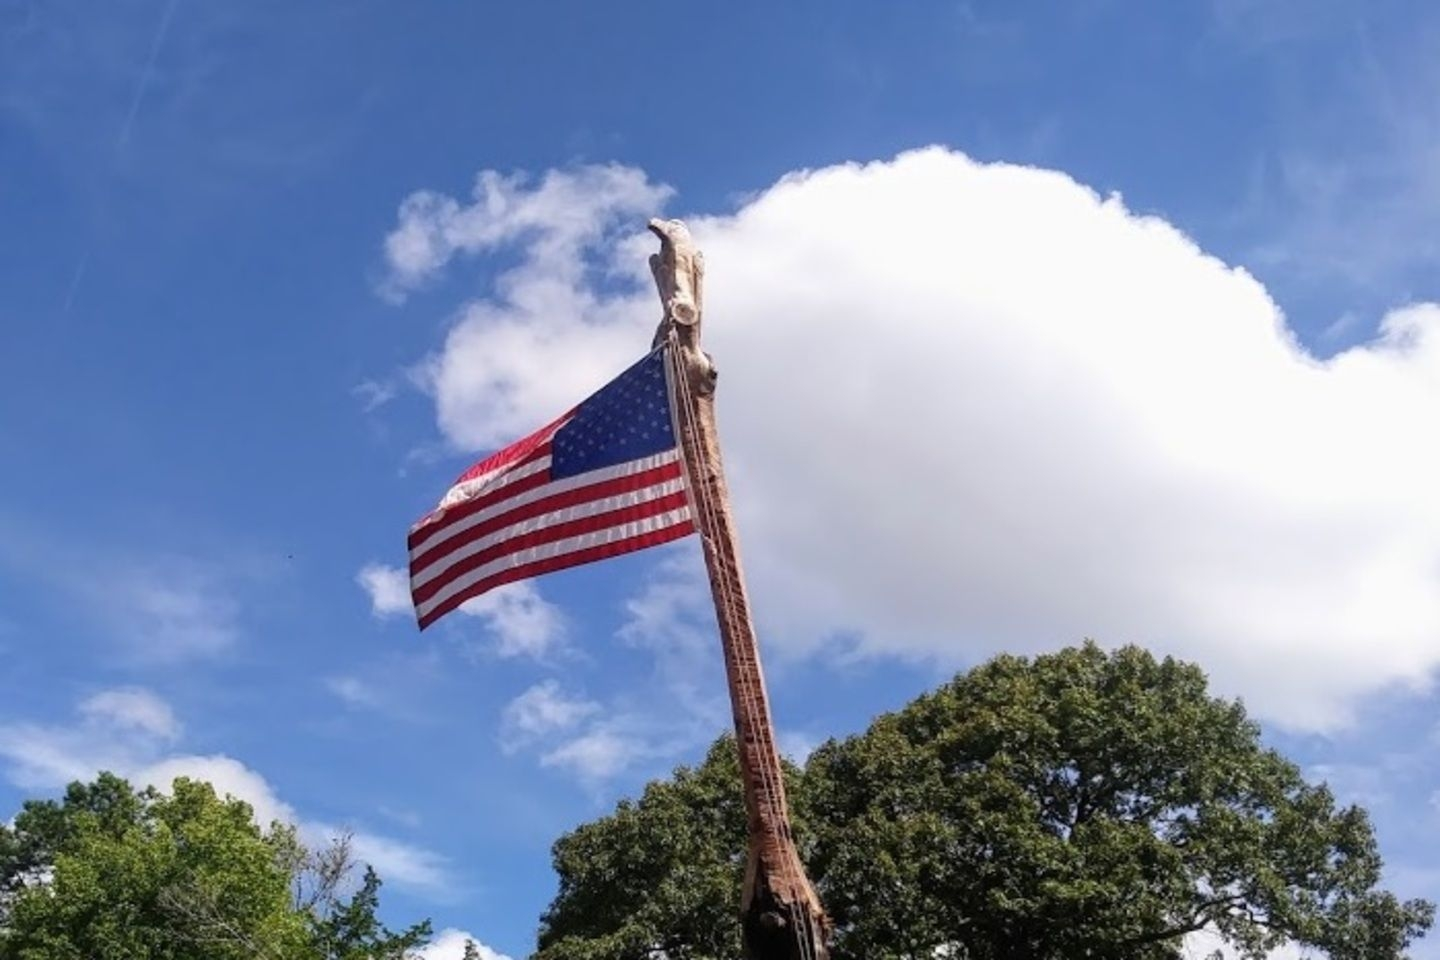 Member Jerry Blackwell submitted this custom display of Old Glory.